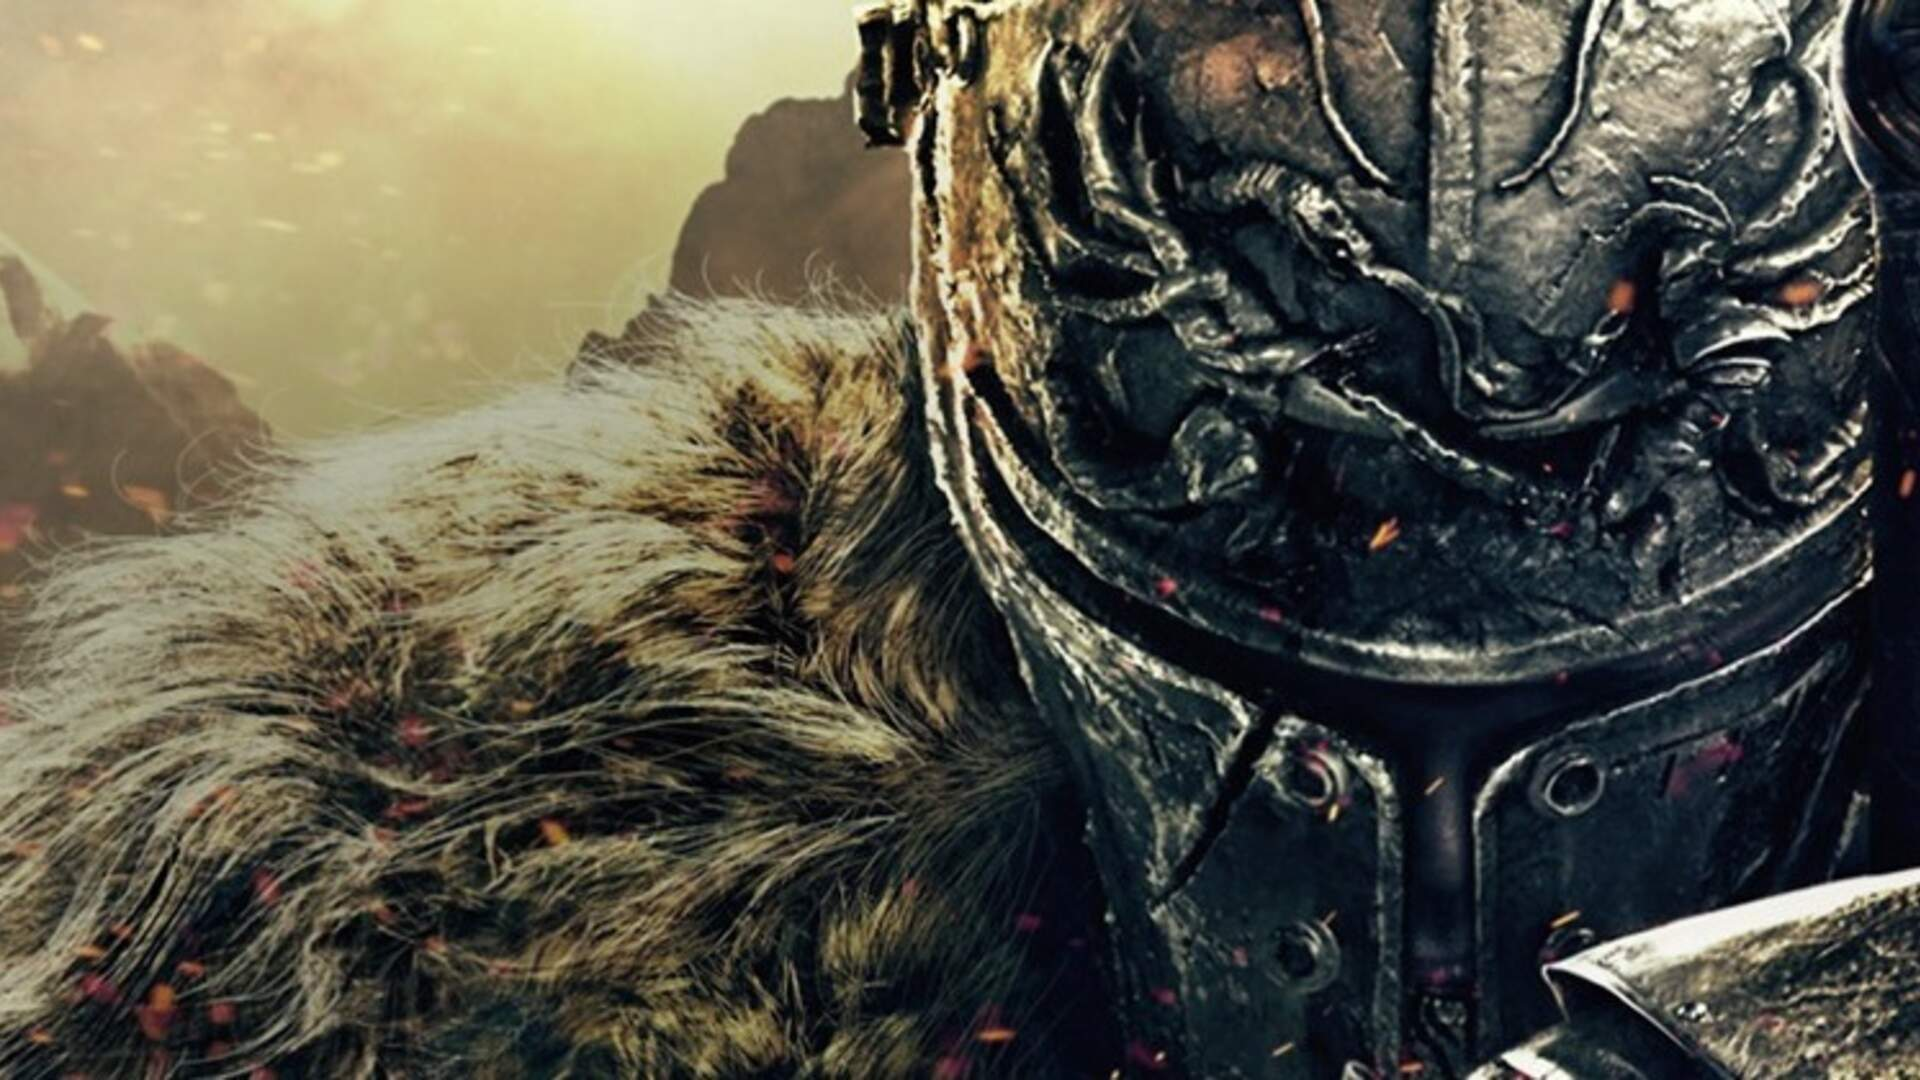 Dark Souls Needs to Die: My Complicated Relationship With the Series That Helped Me Beat Cancer